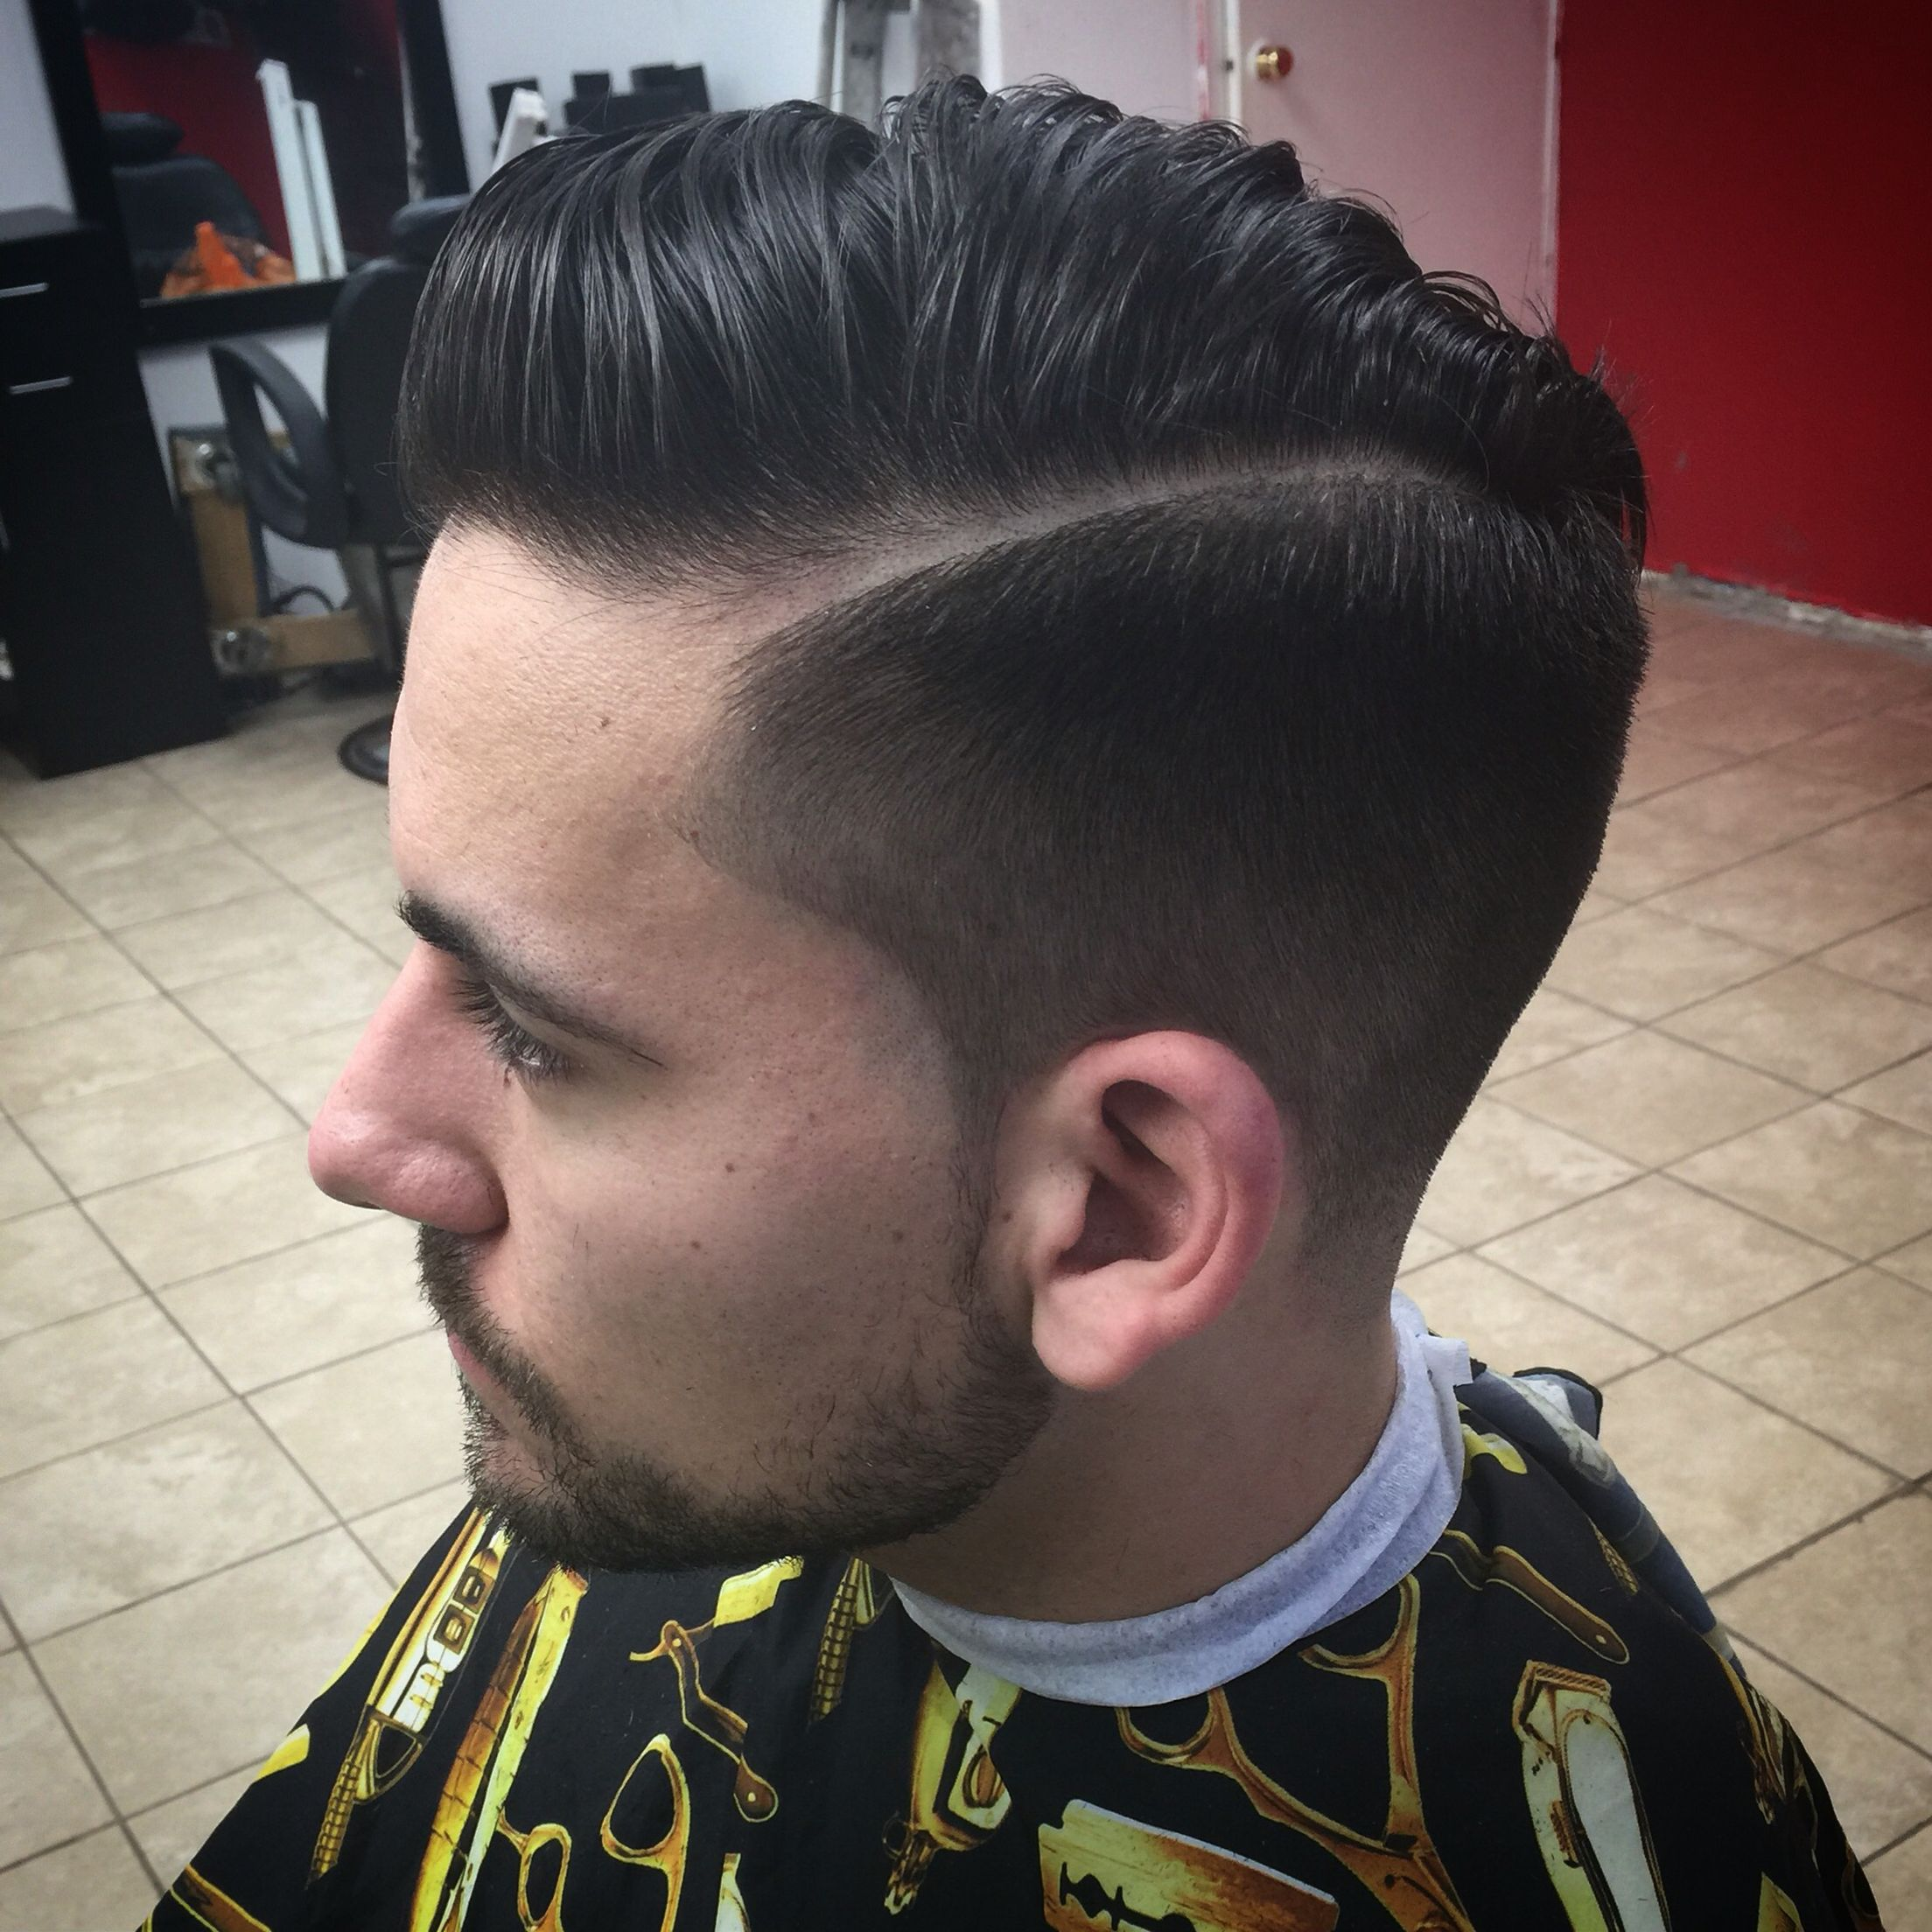 Combover With Light Fade Hard Part And Tapper Back Hair Cuts